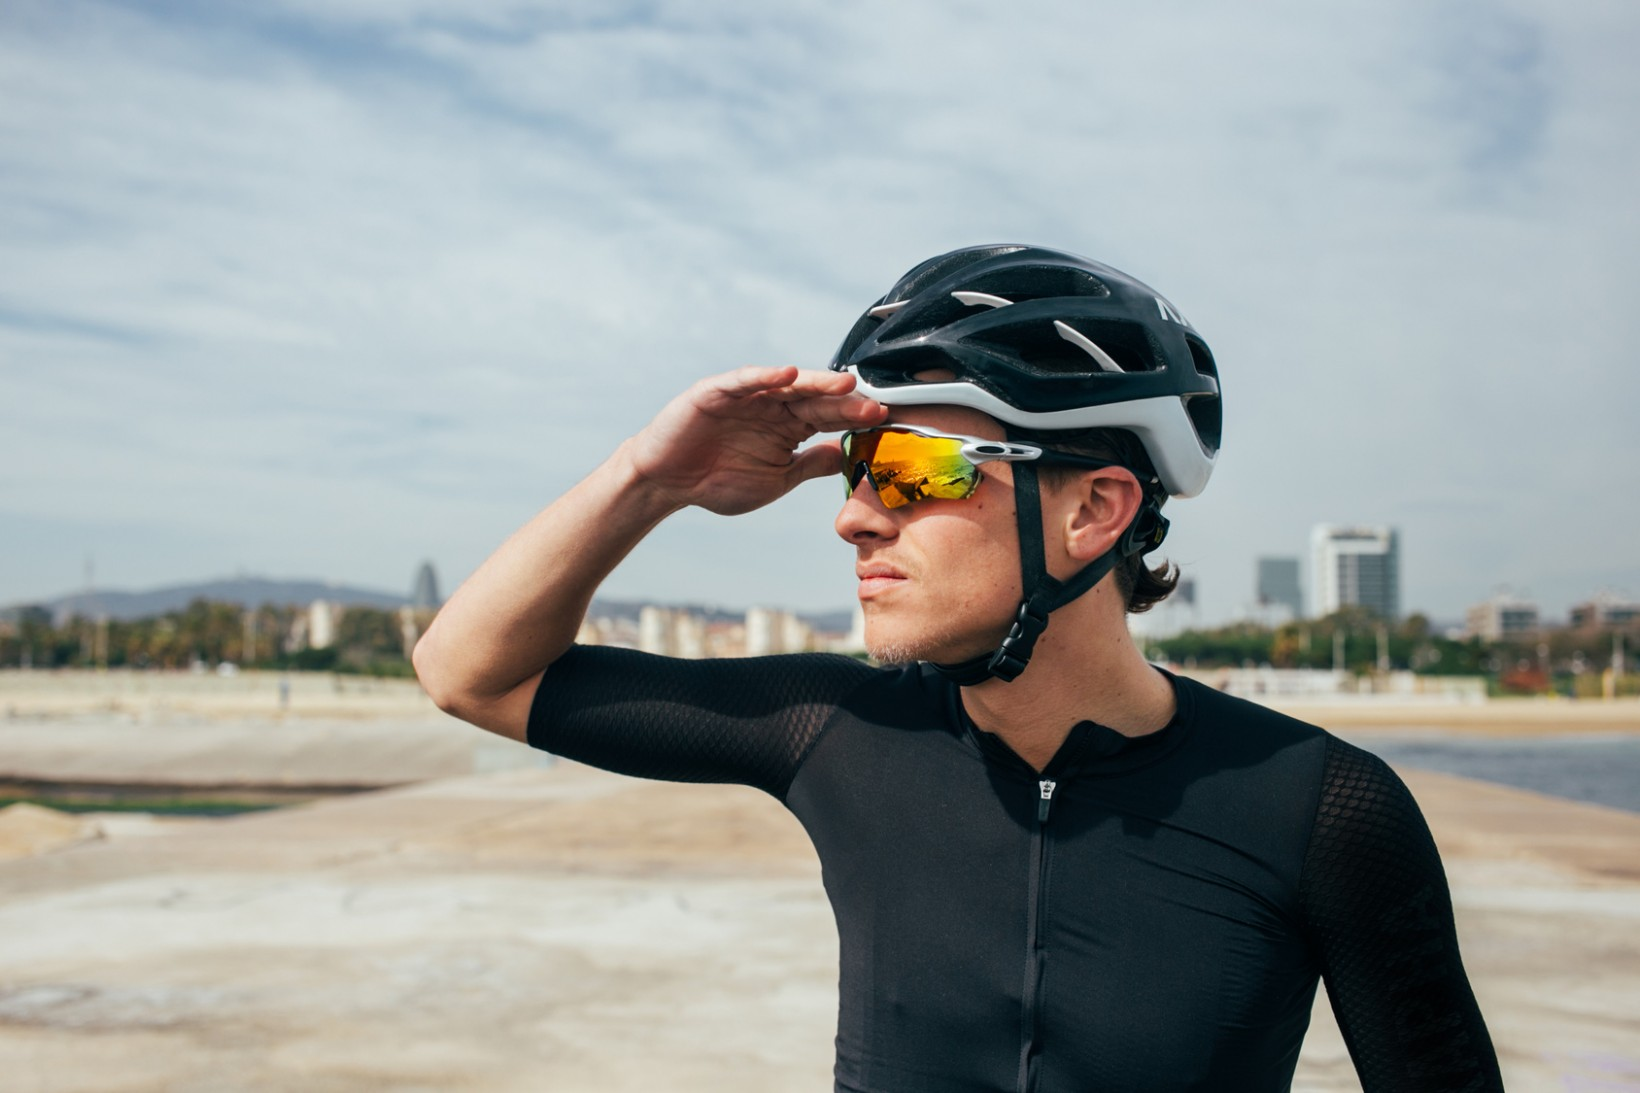 Professional cyclist in all black looks into the distance wearing yellow lenses in glasses with city out of focus in the background